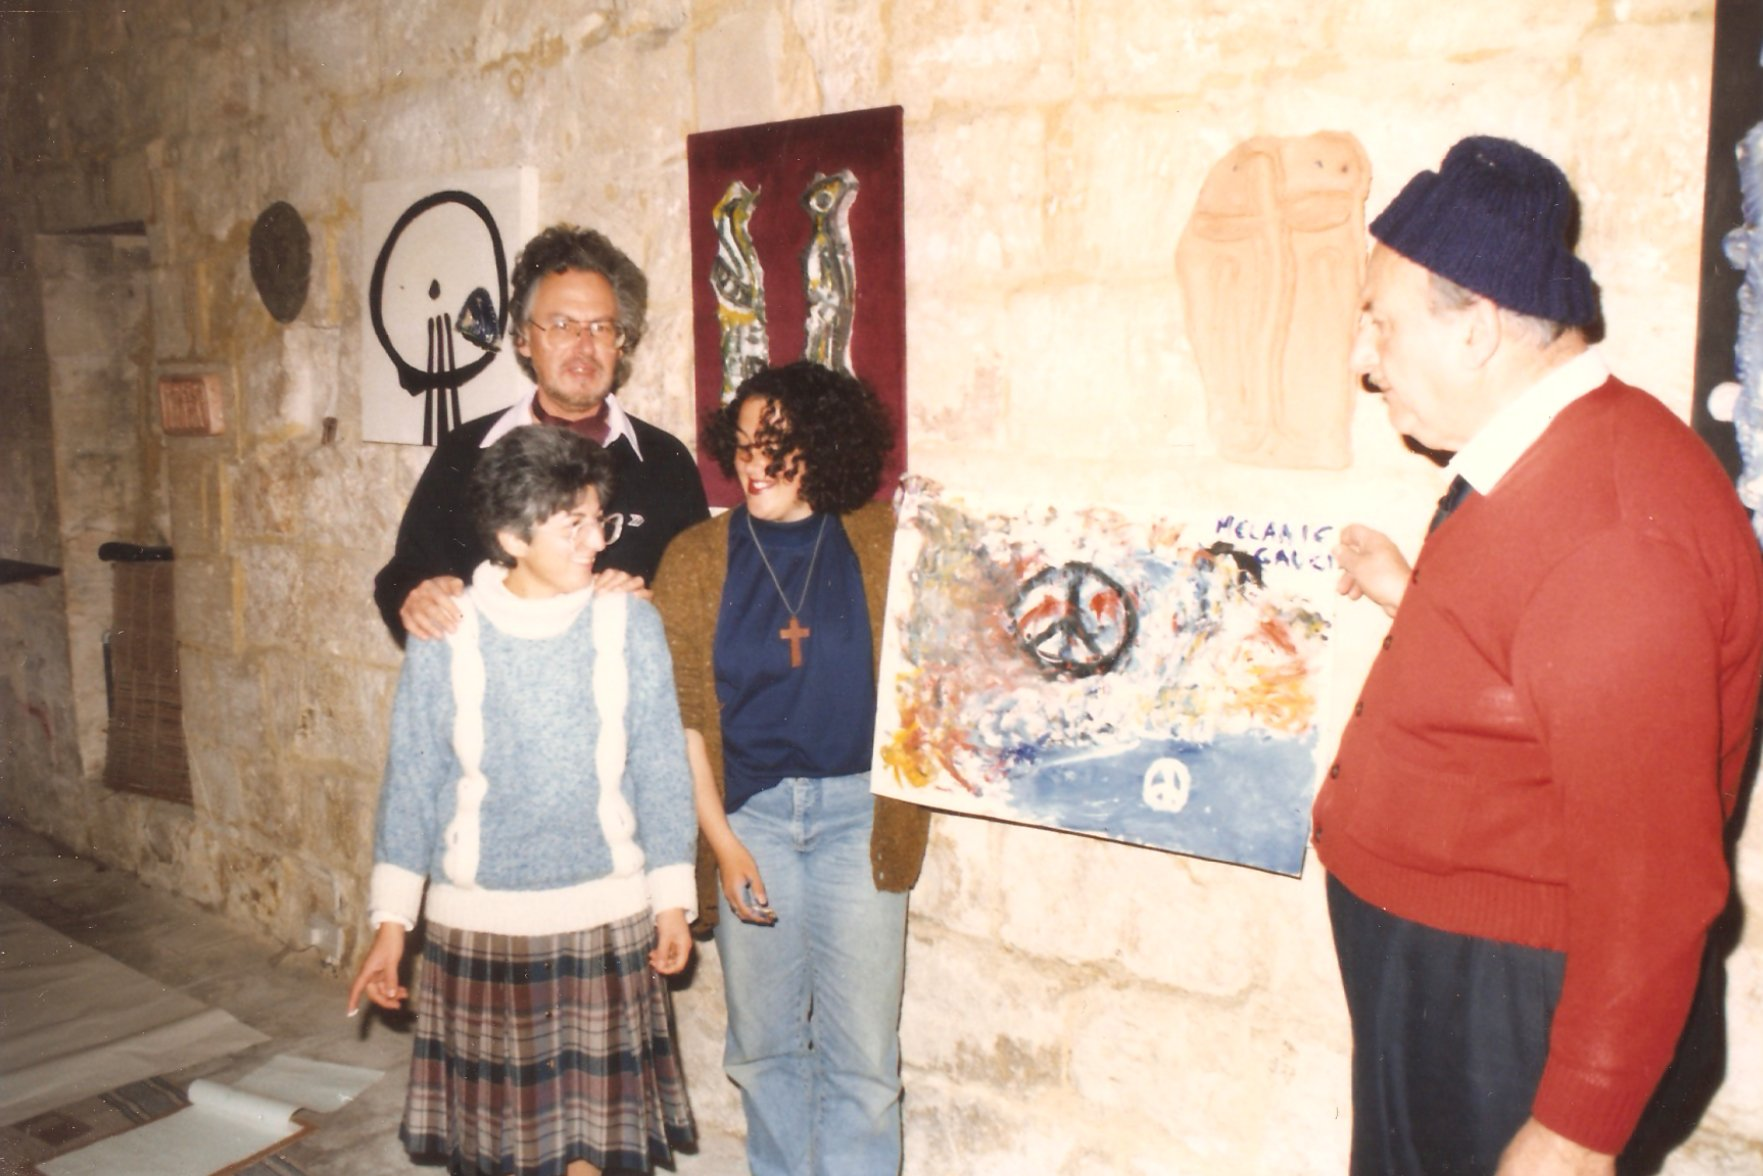 Photo of four people standing inside The Mill. Three are in a group on the left hand side of the photo, these are Richard England and Mary Rose Caruana and another woman. The Woman is holding a painting with peace symbols, the painting is held by Gabriel Caruana who is on the right hand side of the Photo. The photo was taken during the Colour and Form for Peace happening at The Mill.